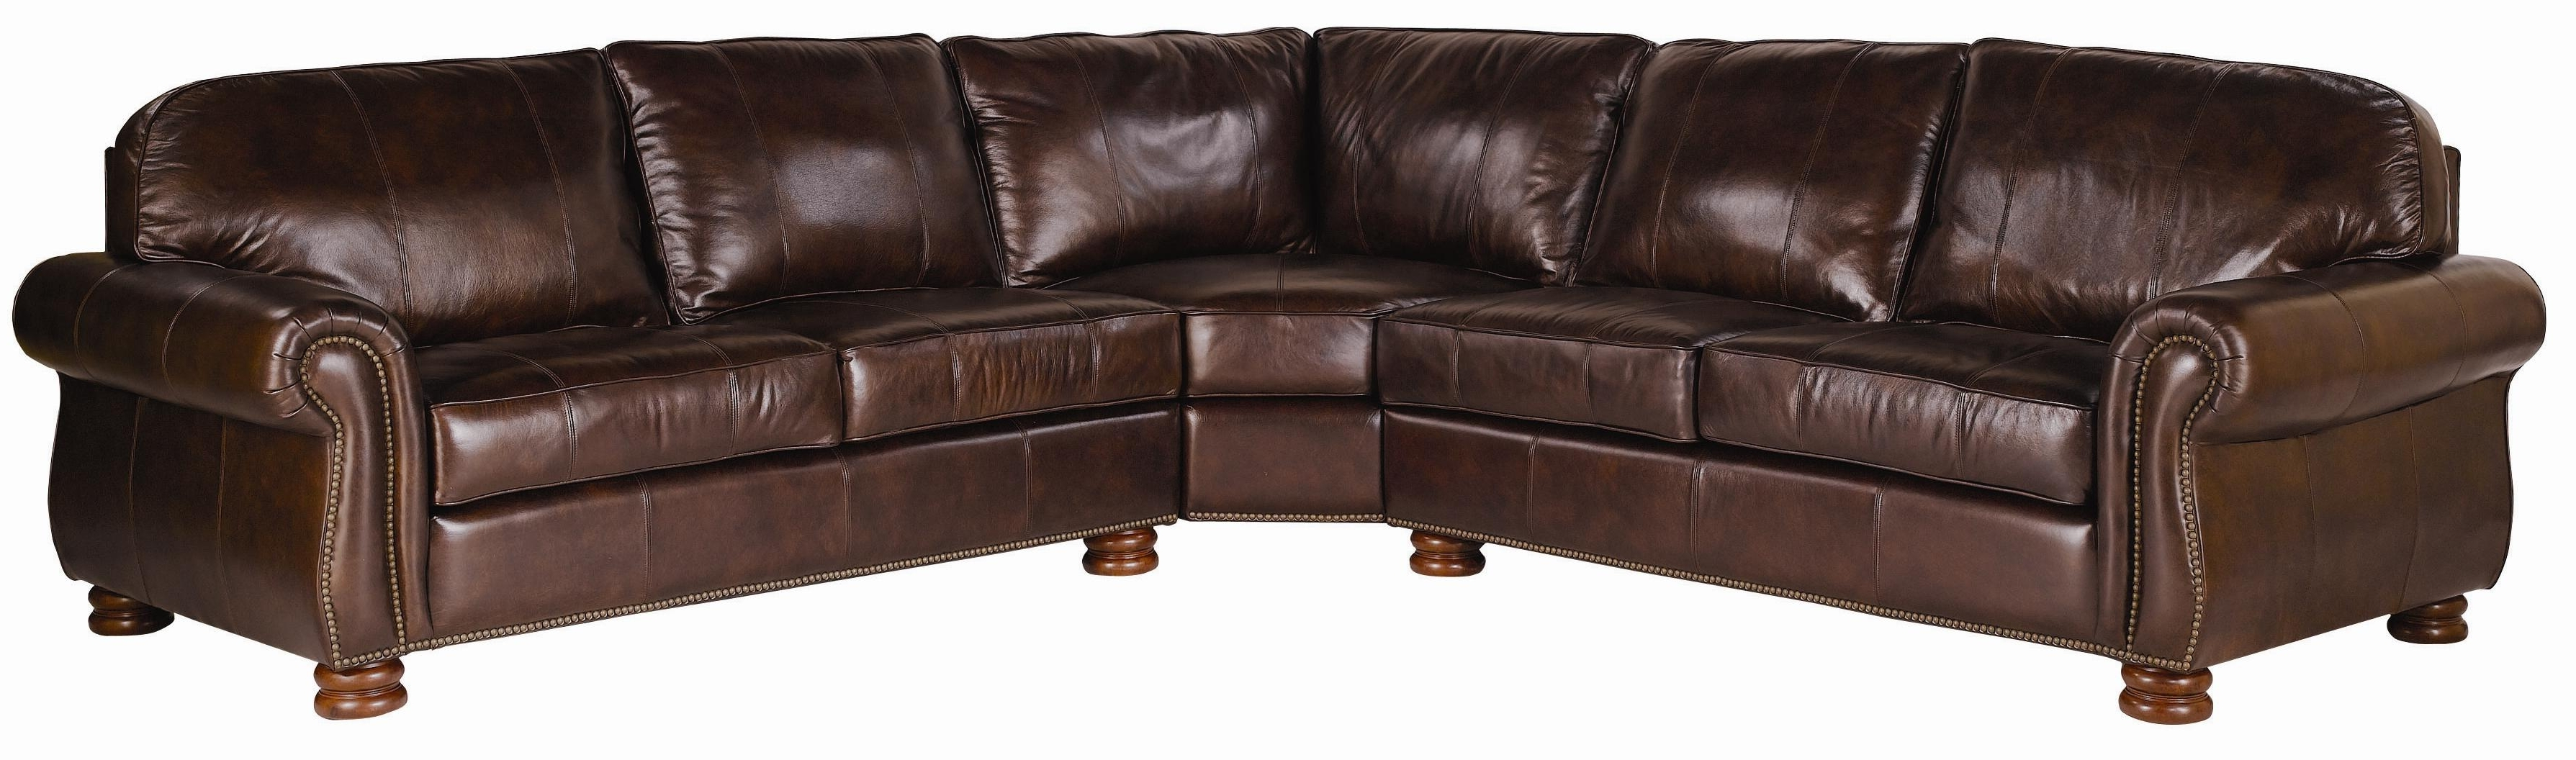 Most Recent Thomasville® Leather Choices – Benjamin Leather Select 3 Piece Inside Thomasville Sectional Sofas (View 7 of 15)